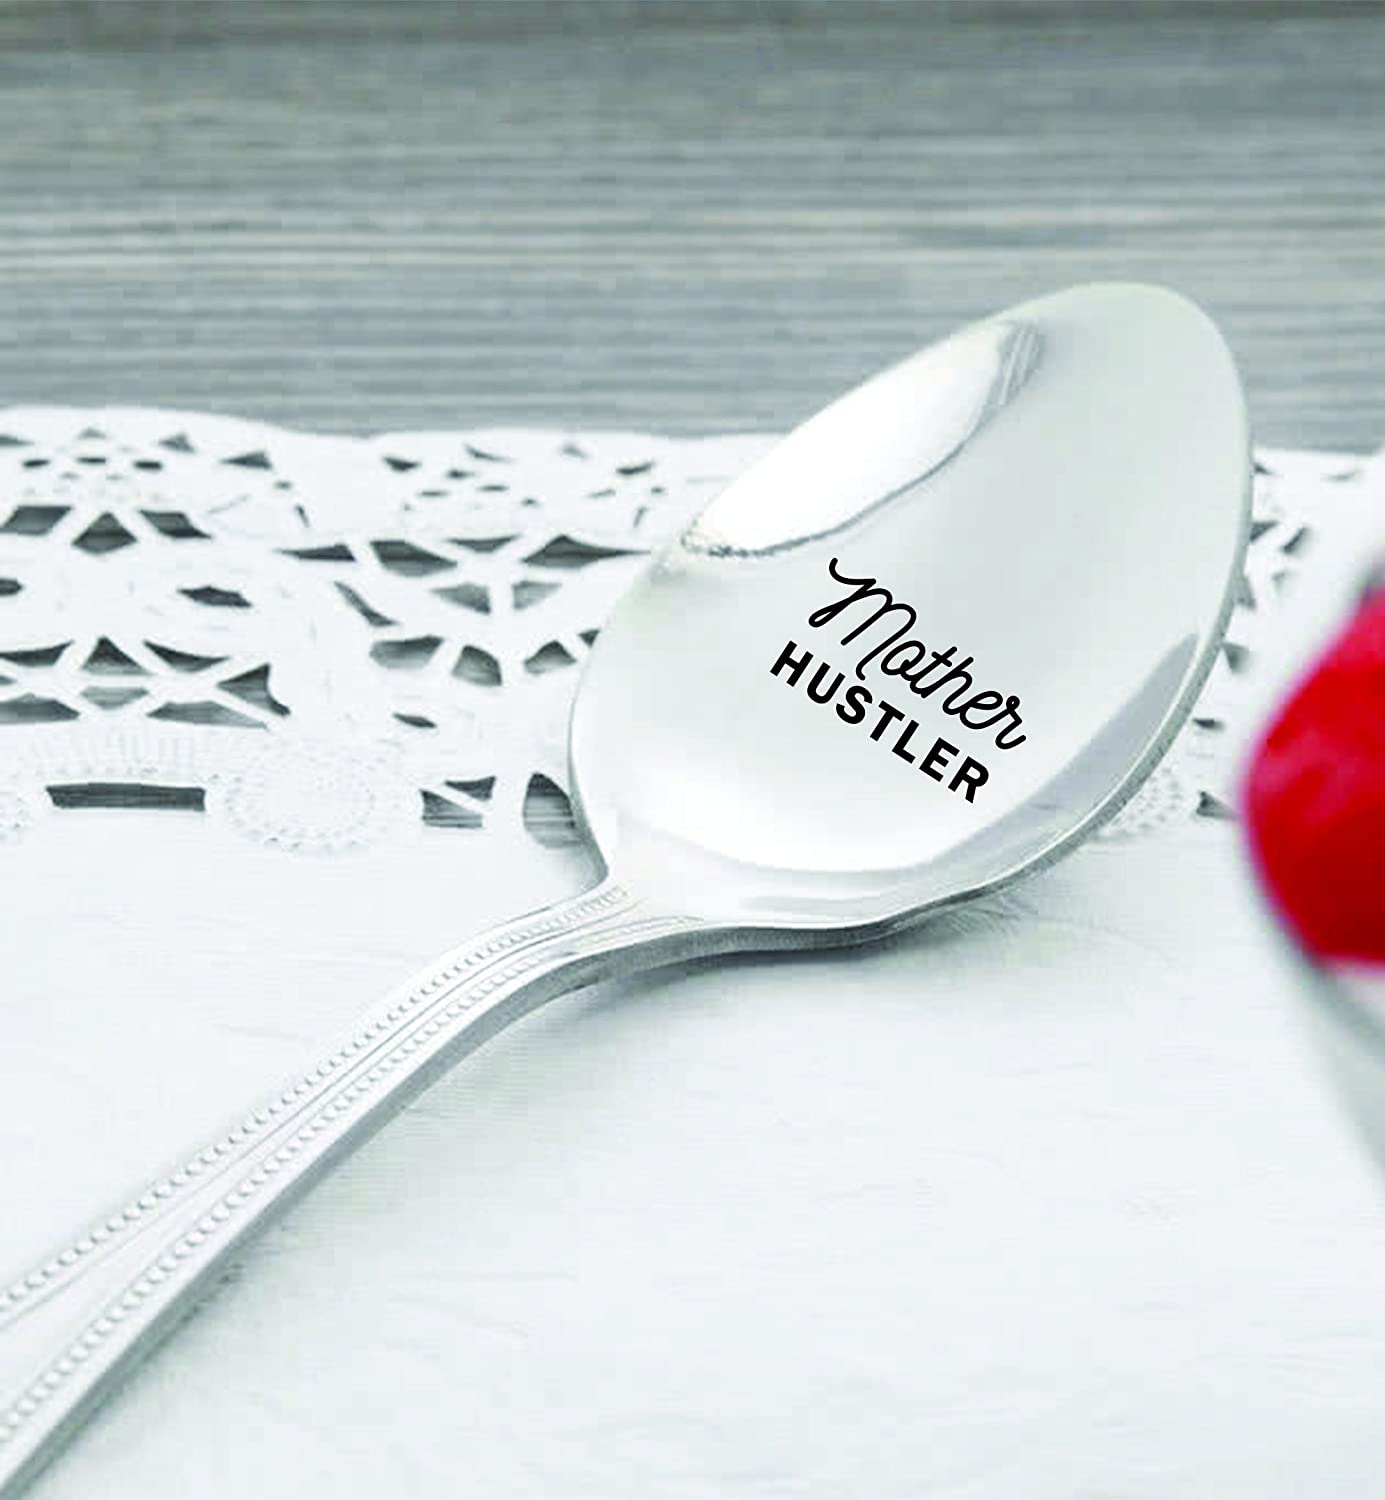 Gift for mom Mothers day gifts Teaspoon Keepsake gifts Mother hustler Gift for her 7 inches Engraved spoon Ice cream spoon Mom gifts for birthday